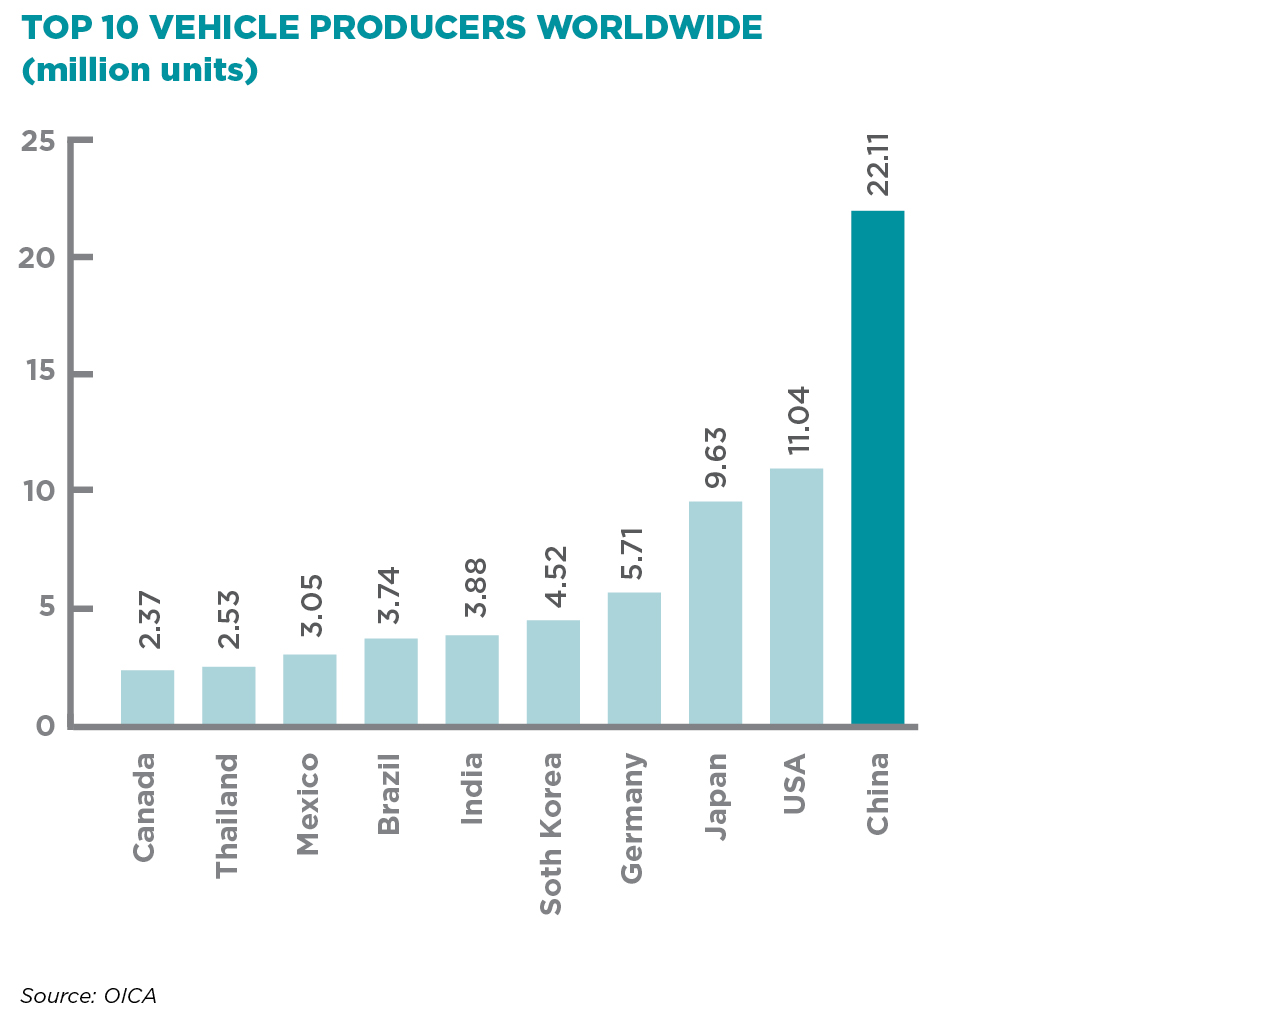 TOP 10 VEHICLE PRODUCERS WORLDWIDE (million units)